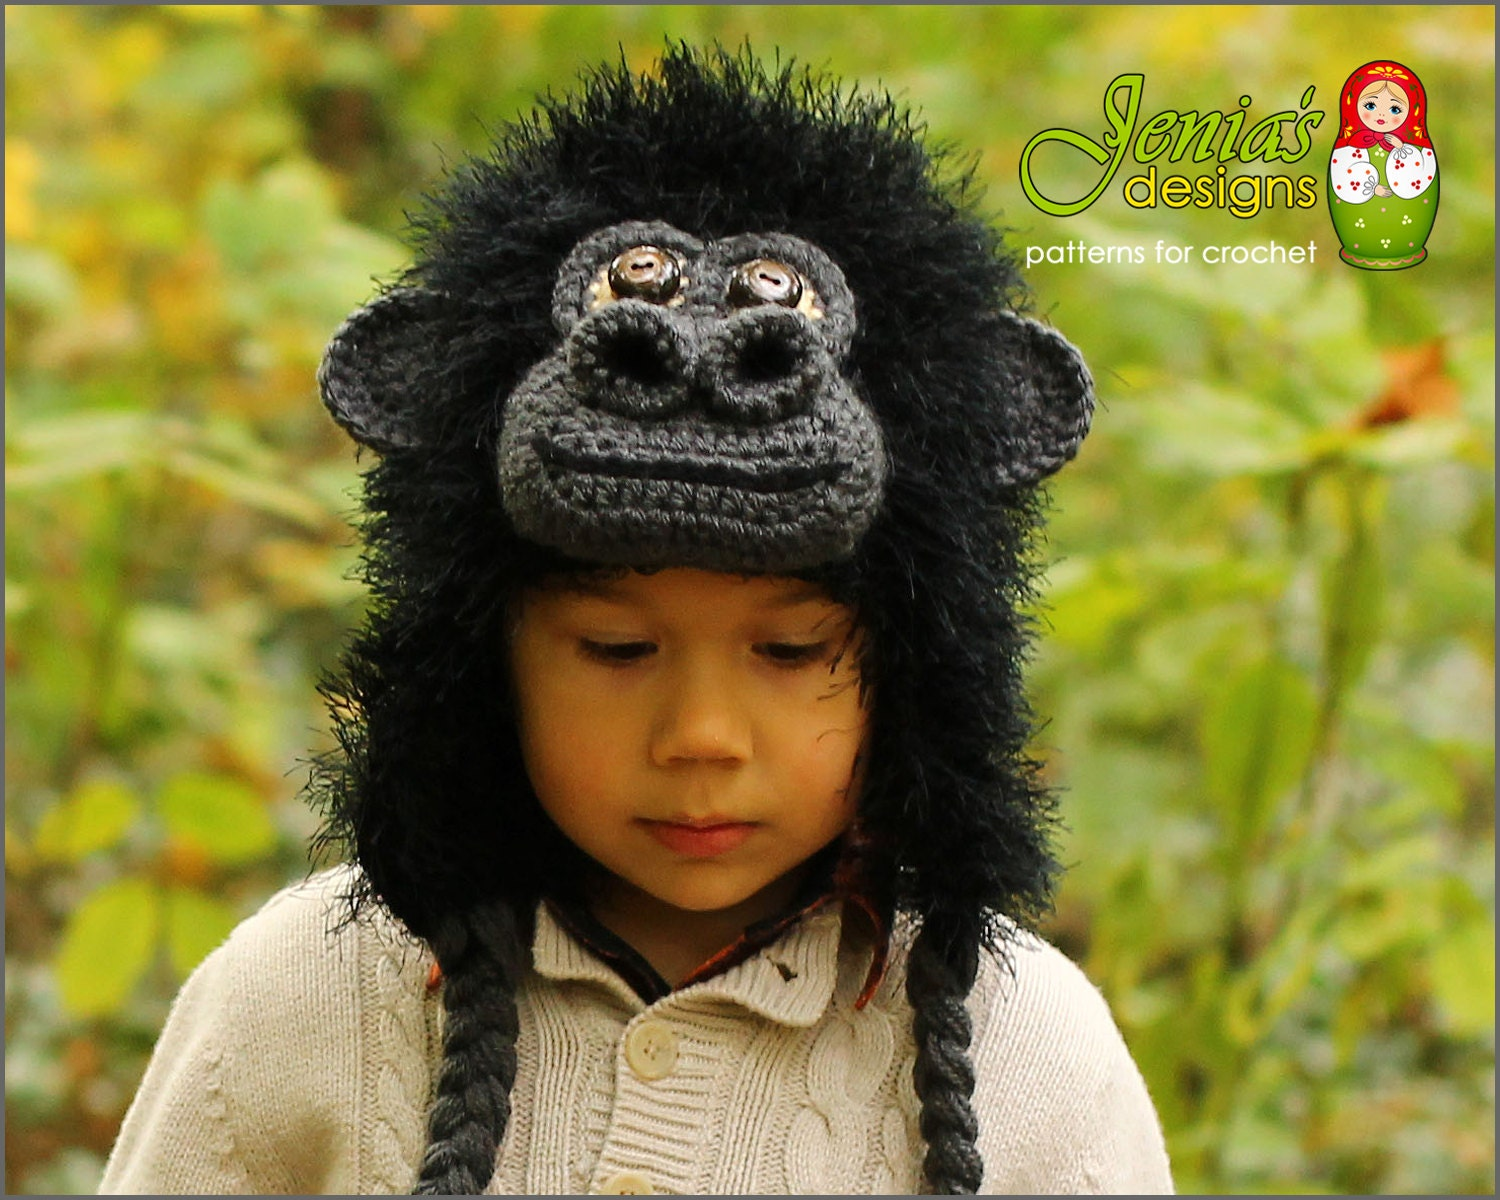 Crochet pattern monkey animal hat for baby toddler child crochet pattern gorilla crochet hat pattern monkeyape hat pattern for baby bankloansurffo Images